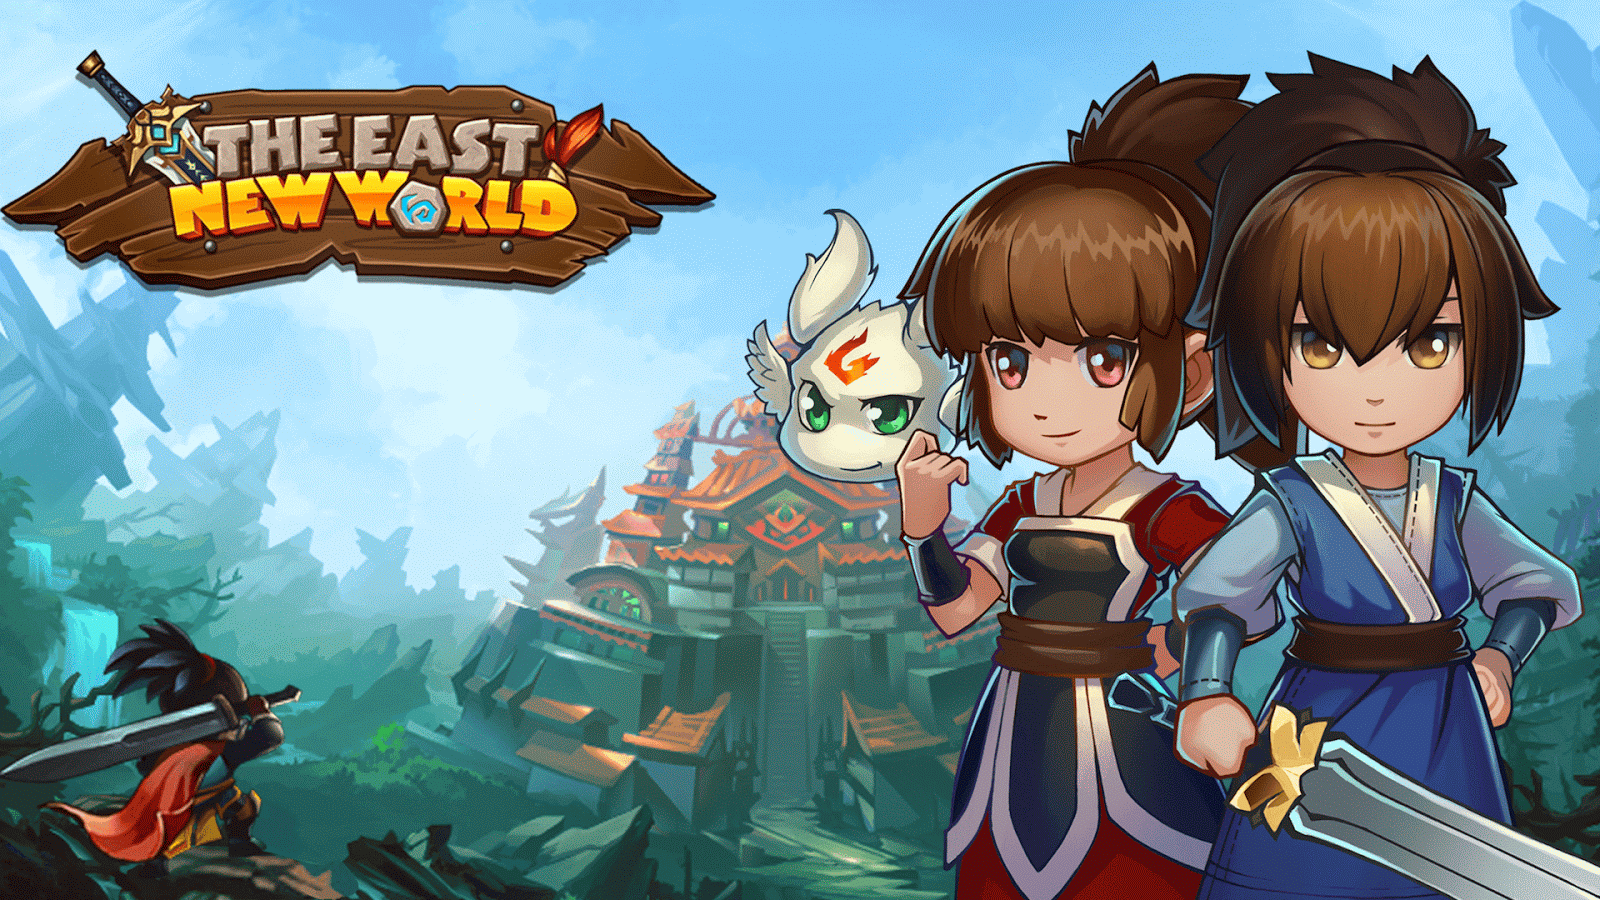 The East New World Screenshot 5